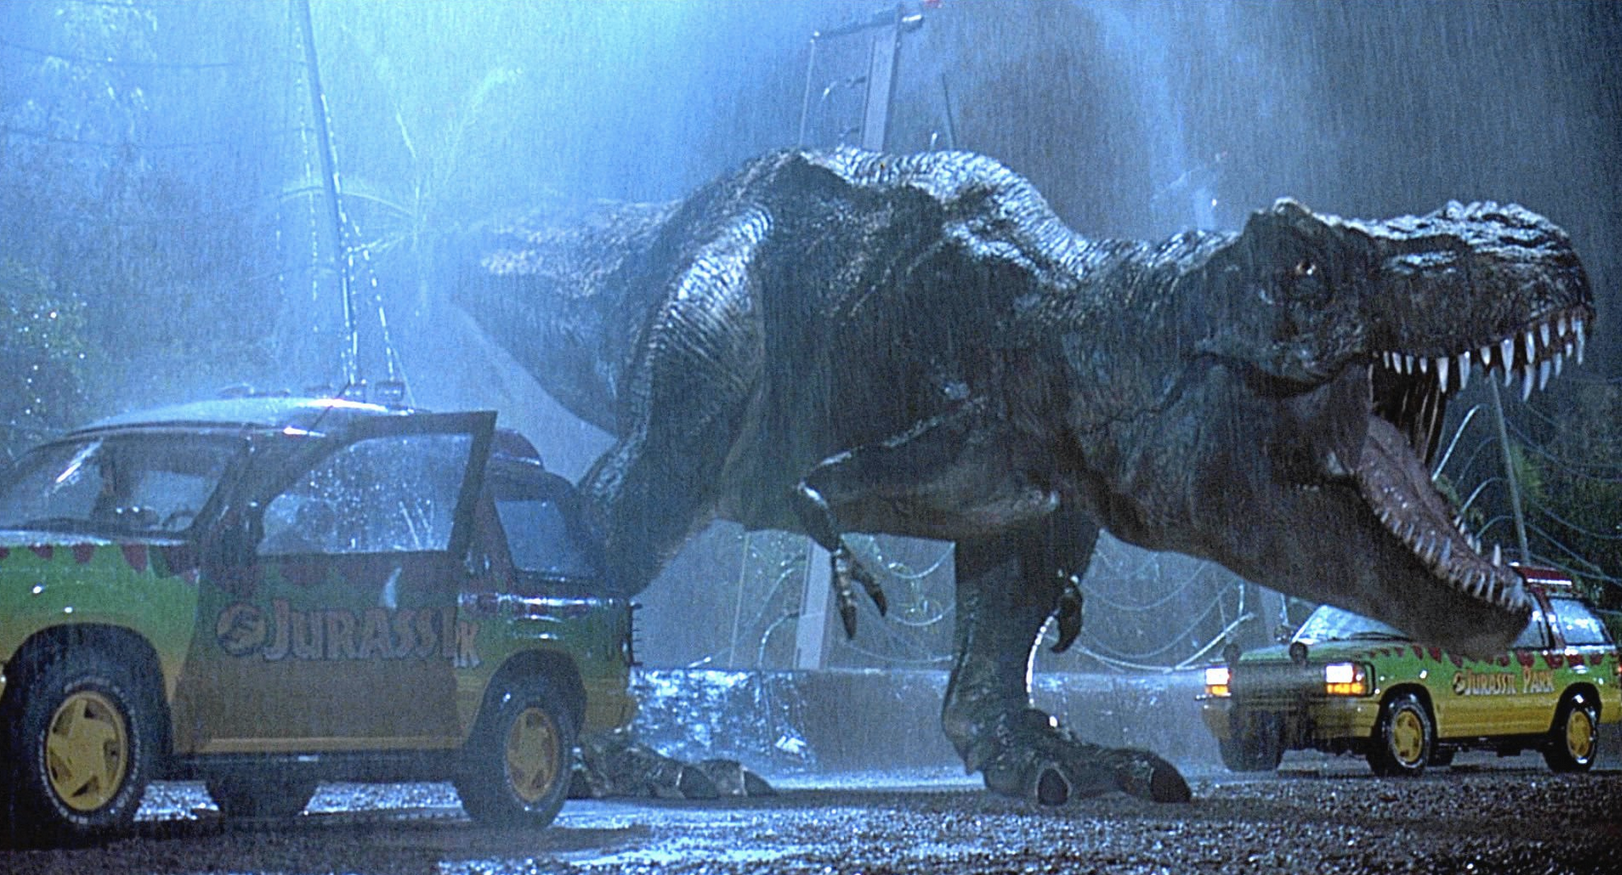 I'll Never Get Over The Original Jurassic Park